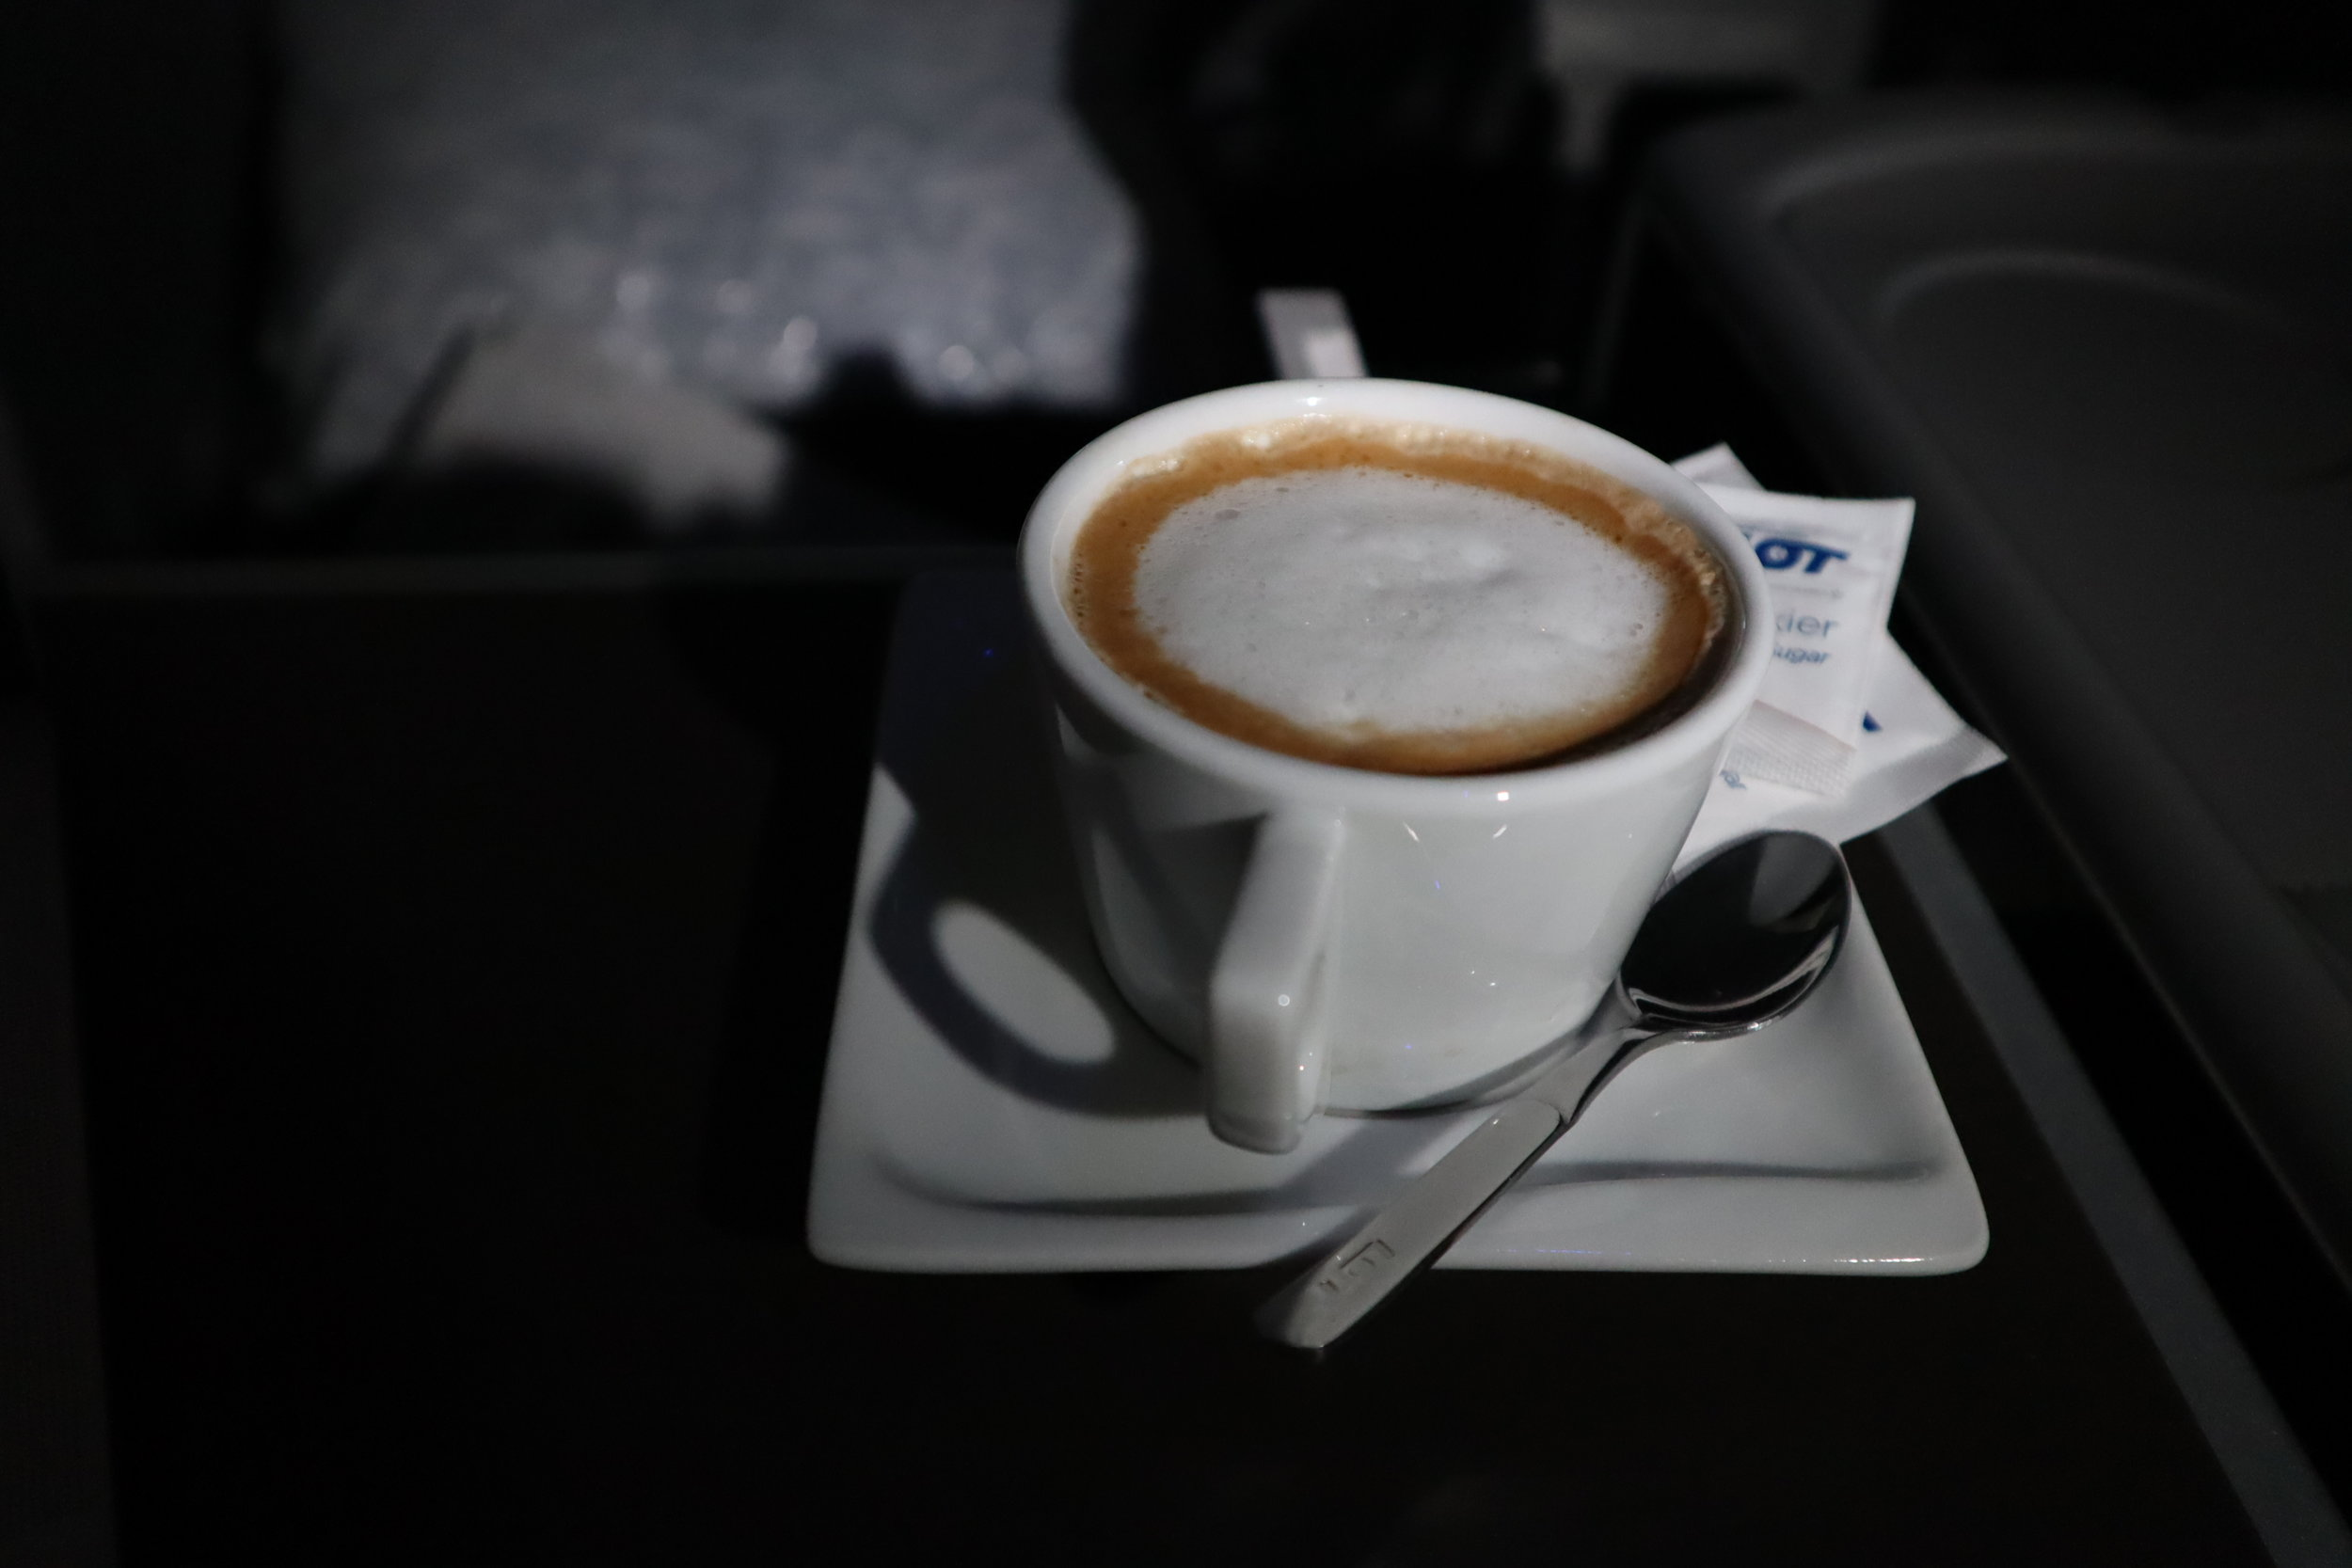 LOT Polish Airlines business class – Cappuccino